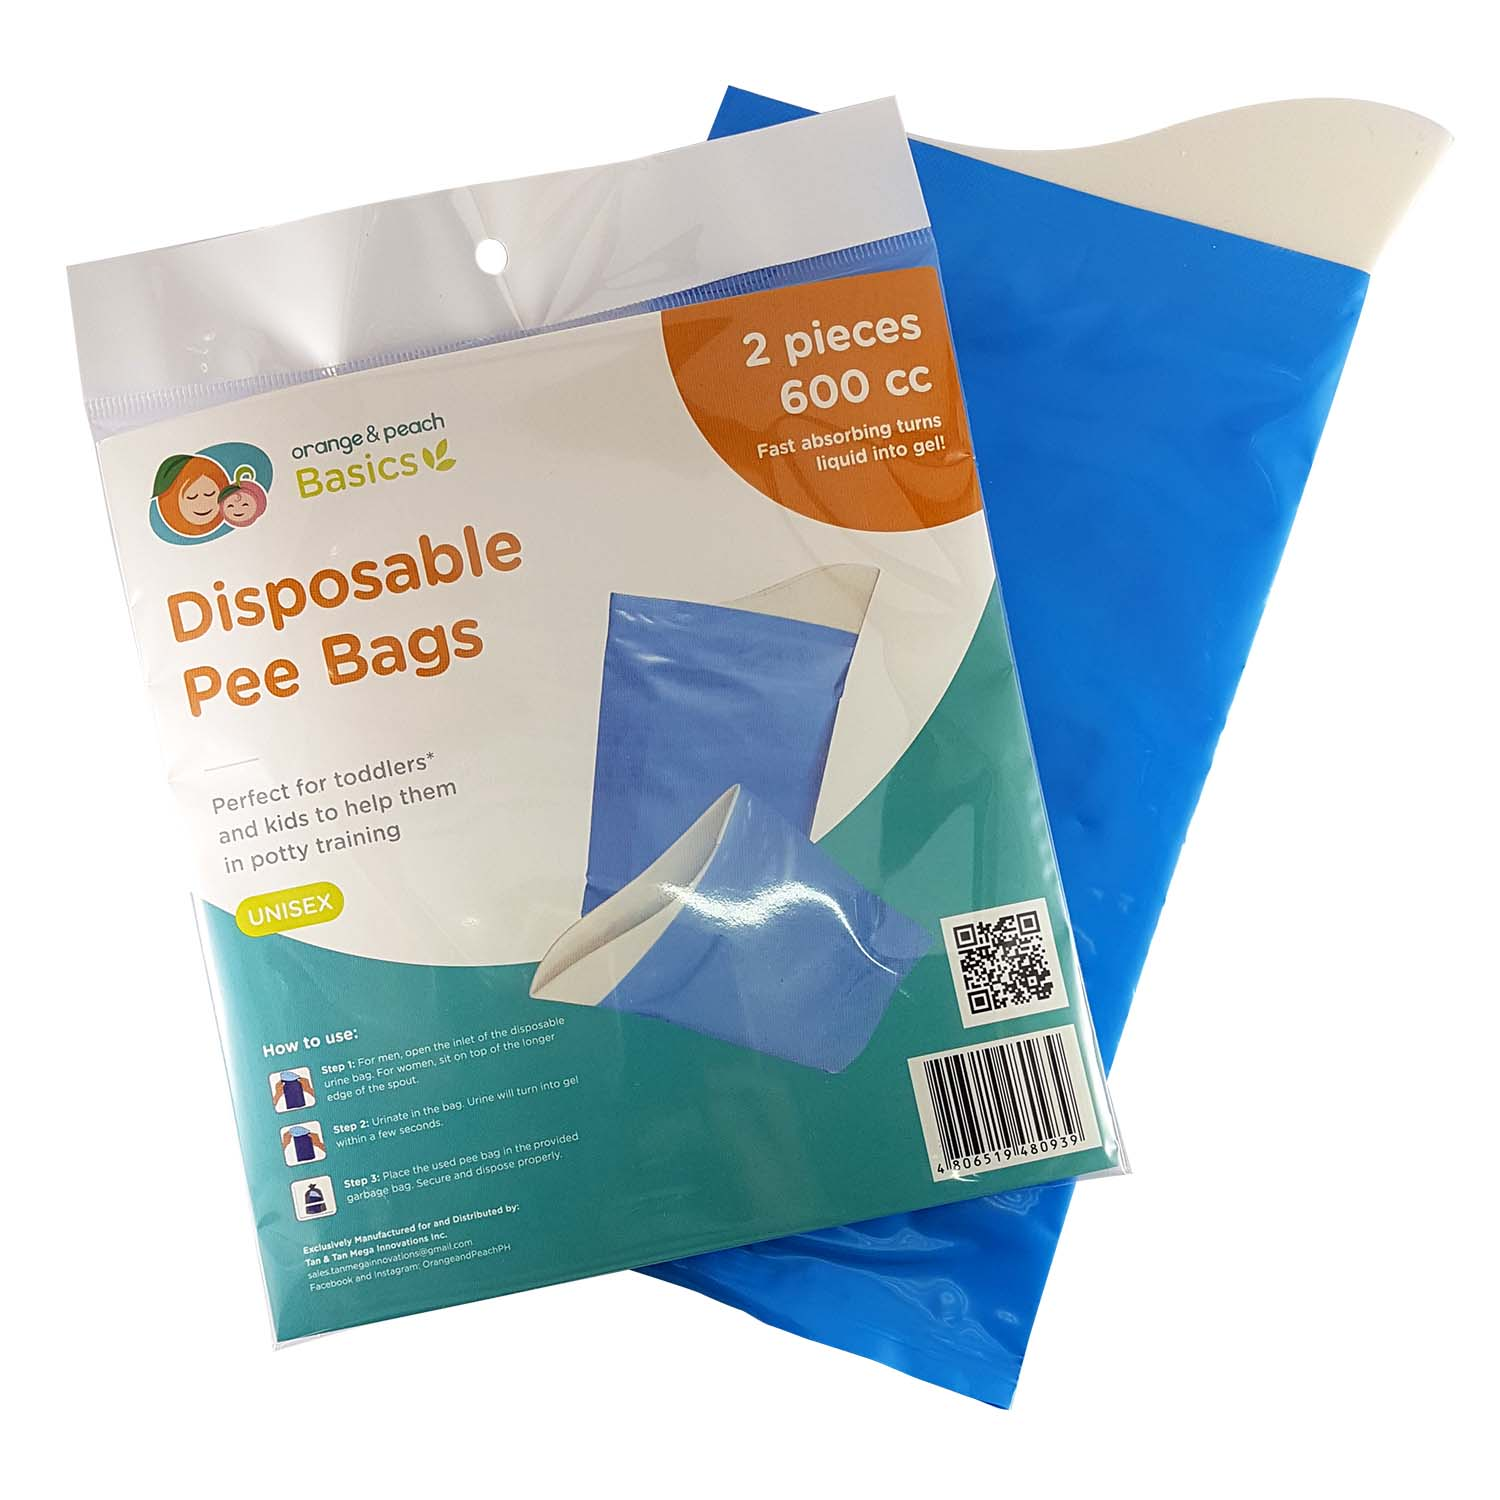 Disposable Pee Bags